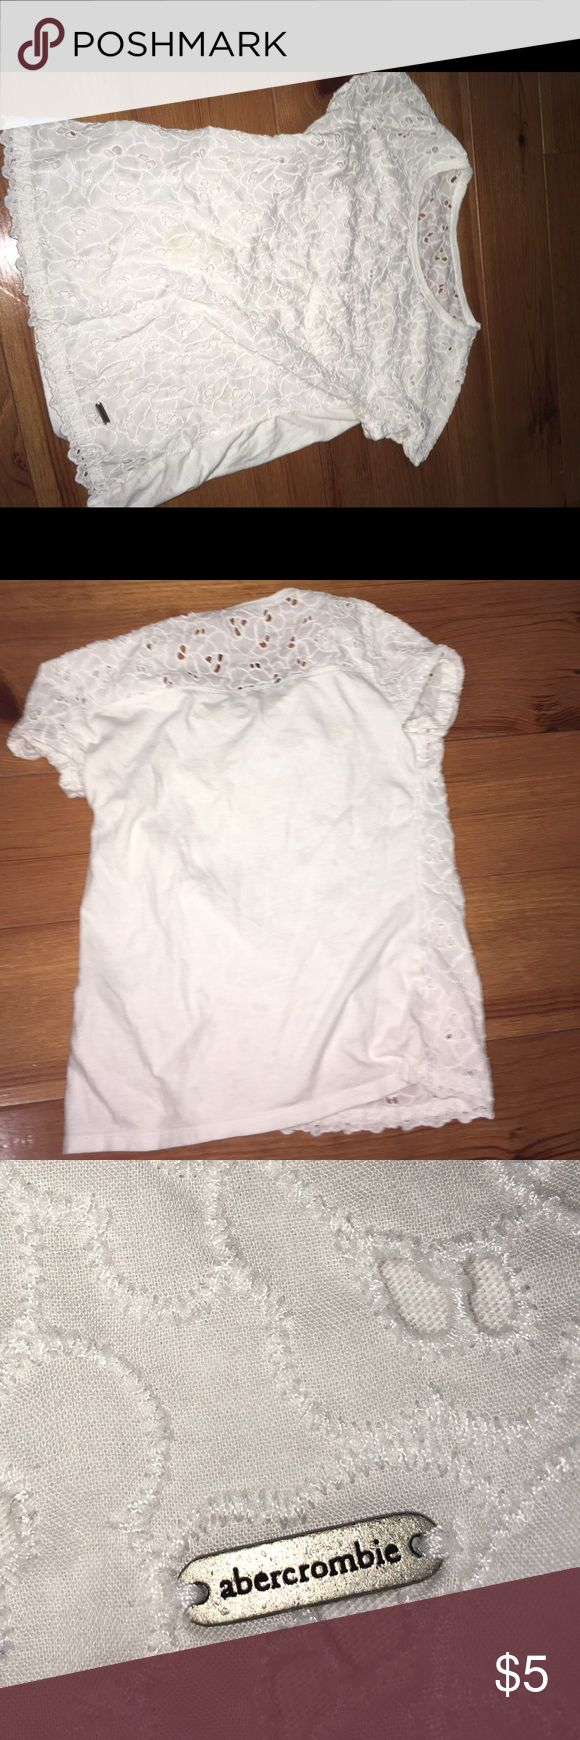 Abercrombie Kids White Lace Shirt White Lace Shirt// The lace/crochet pattern is all along the front and only the top portion of the back. There is a medal tag/plate with Abercrombie spelled on it on the front and a functioning pocket! **(I also have this shirt in a small. Siblings can match! On the small size shirt the metal tag/plate is hanging as seen in pic 7)  Have any questions? Comment below! Abercombie Kids Shirts & Tops Tees - Short Sleeve